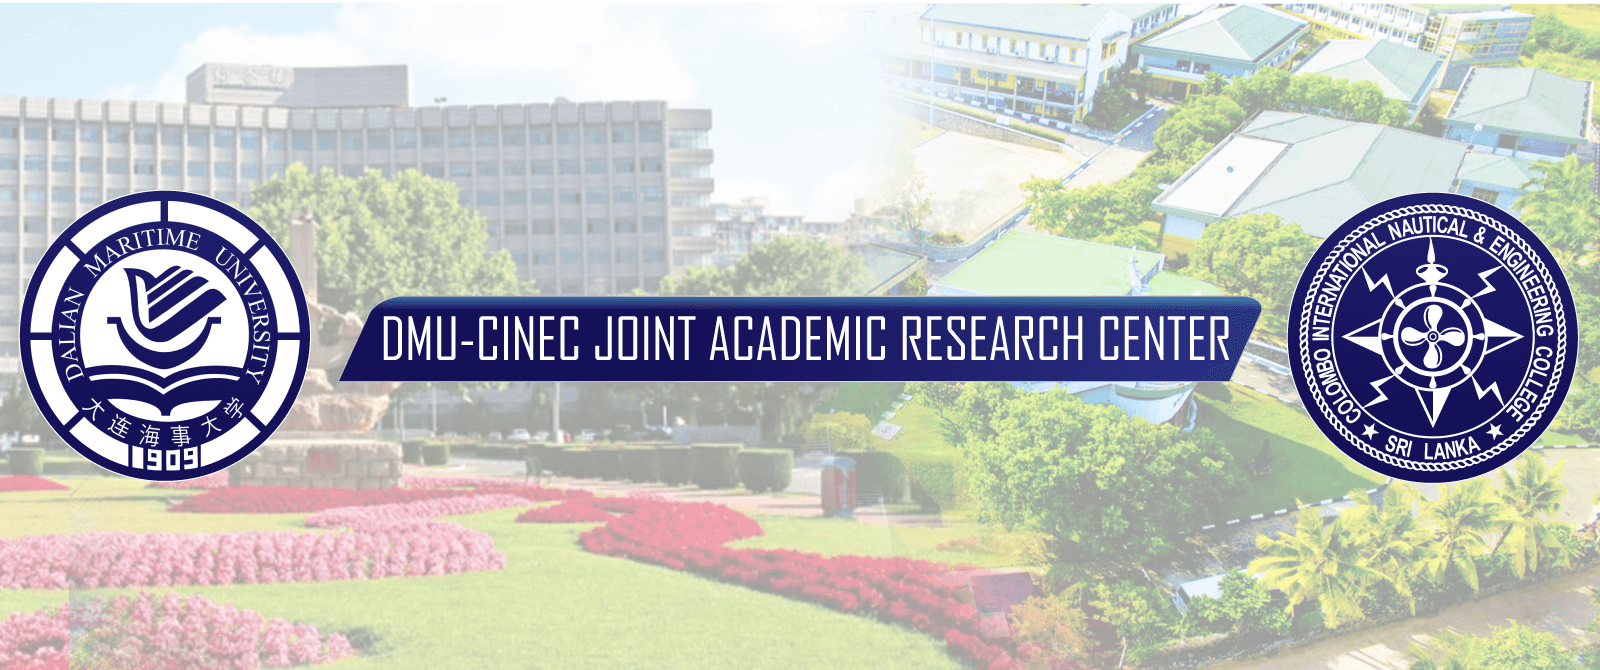 main-default-dmu-cinec-joint-academic-research-center001